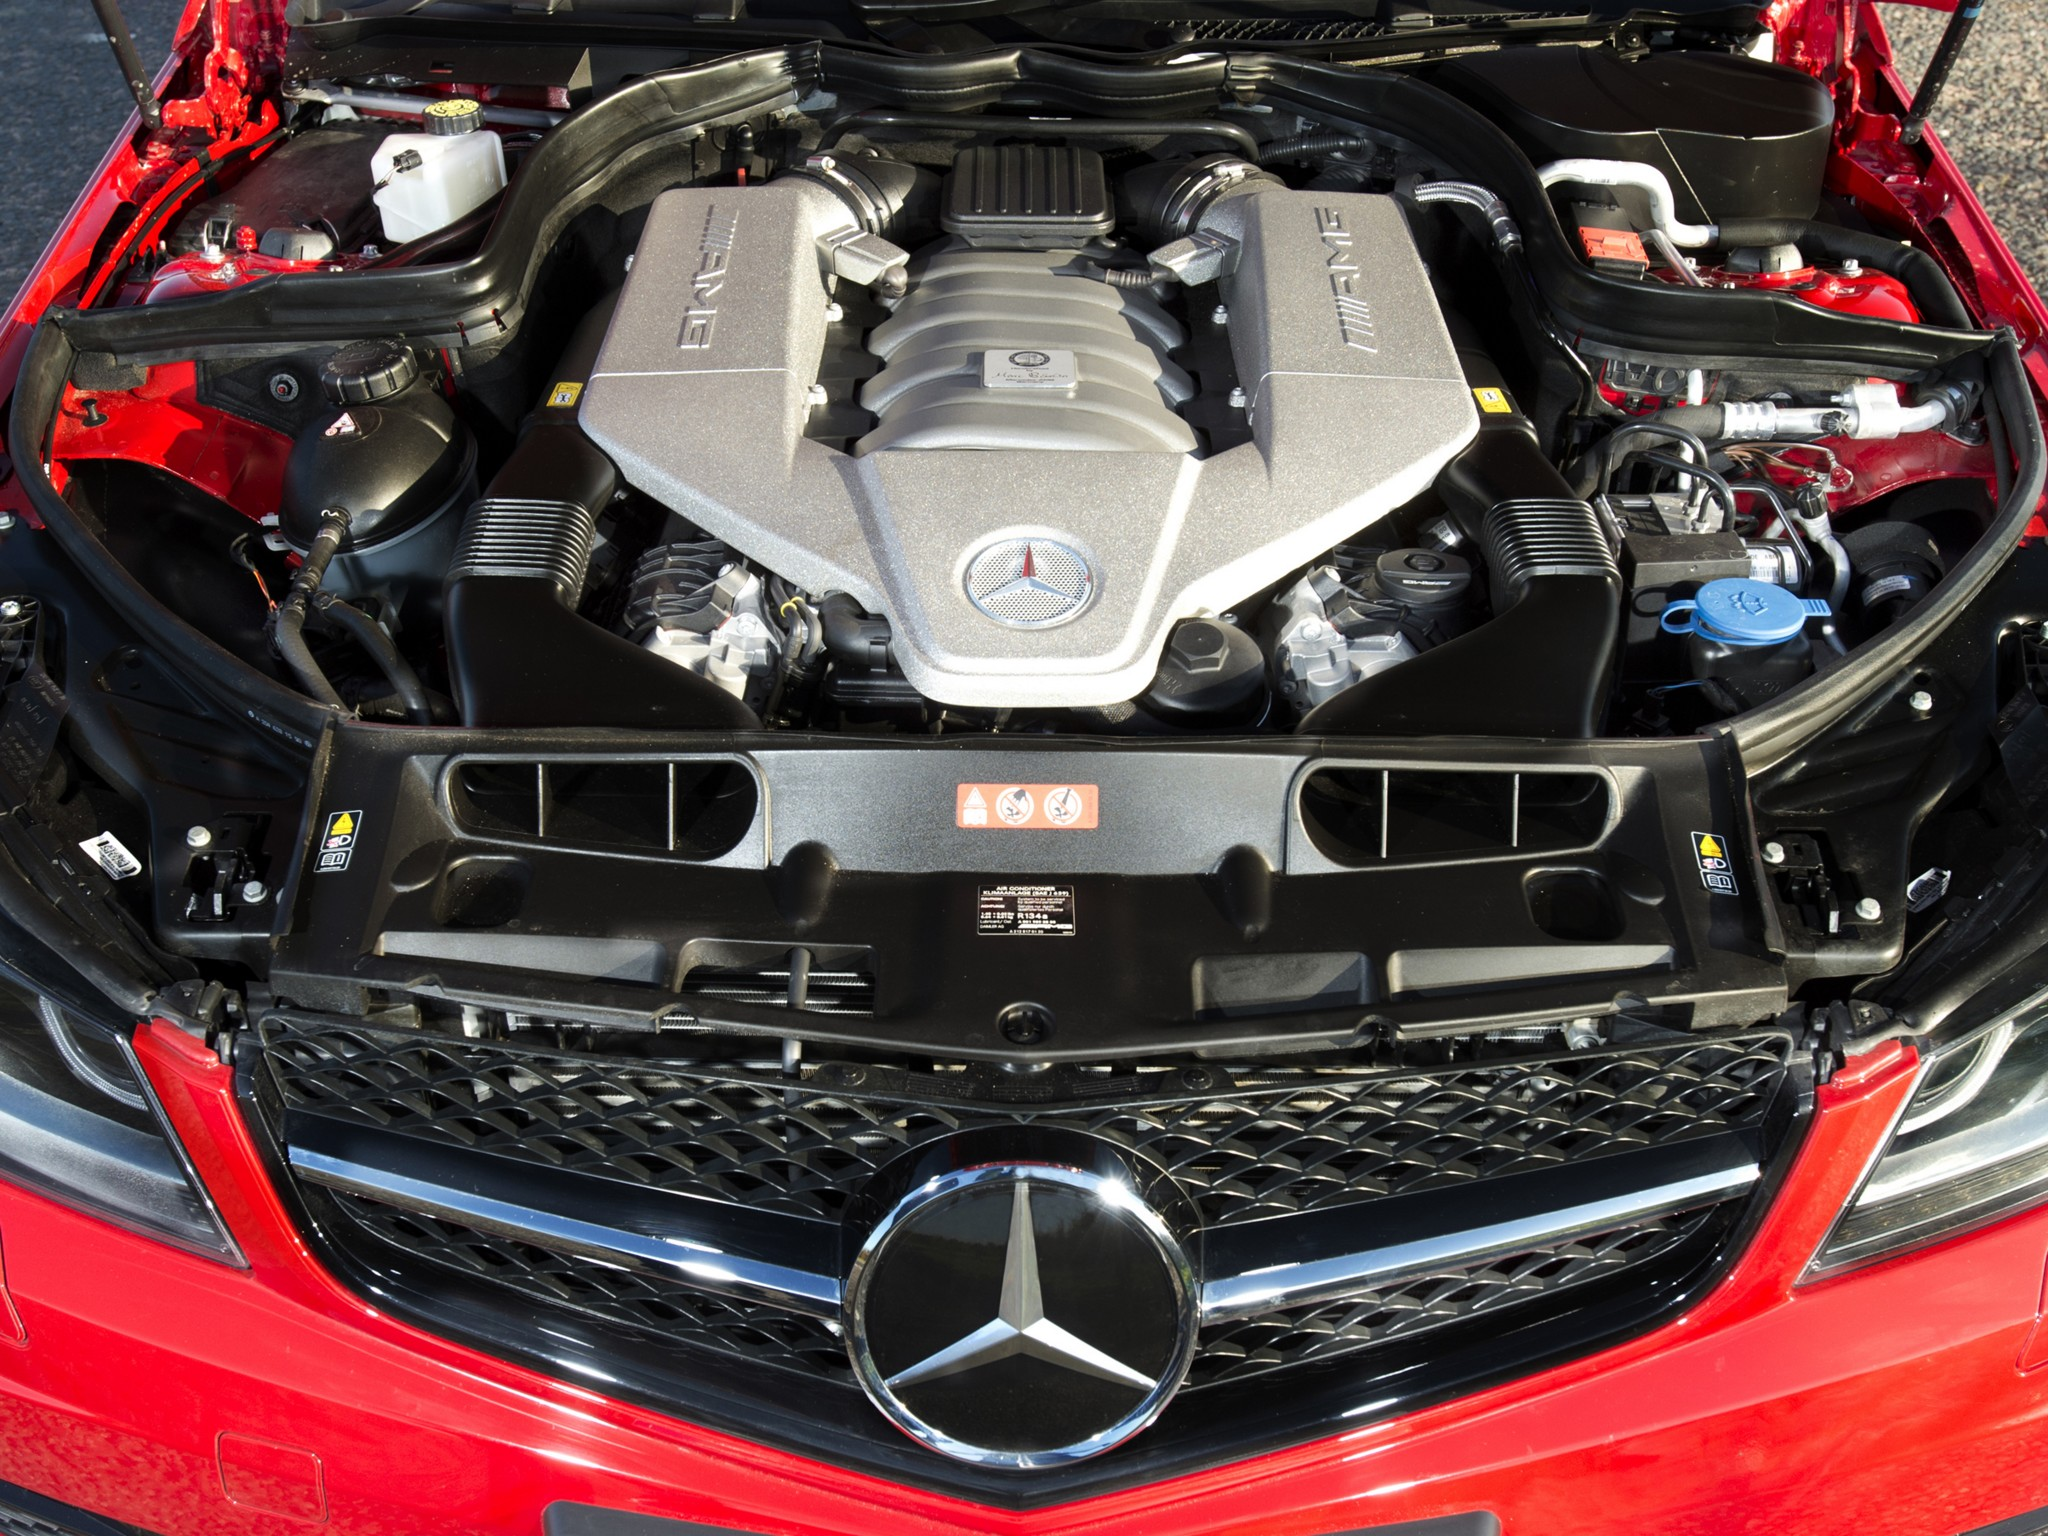 2013 mercedes benz c63 amg edition 507 uk spec w204 for Mercedes benz c63 engine